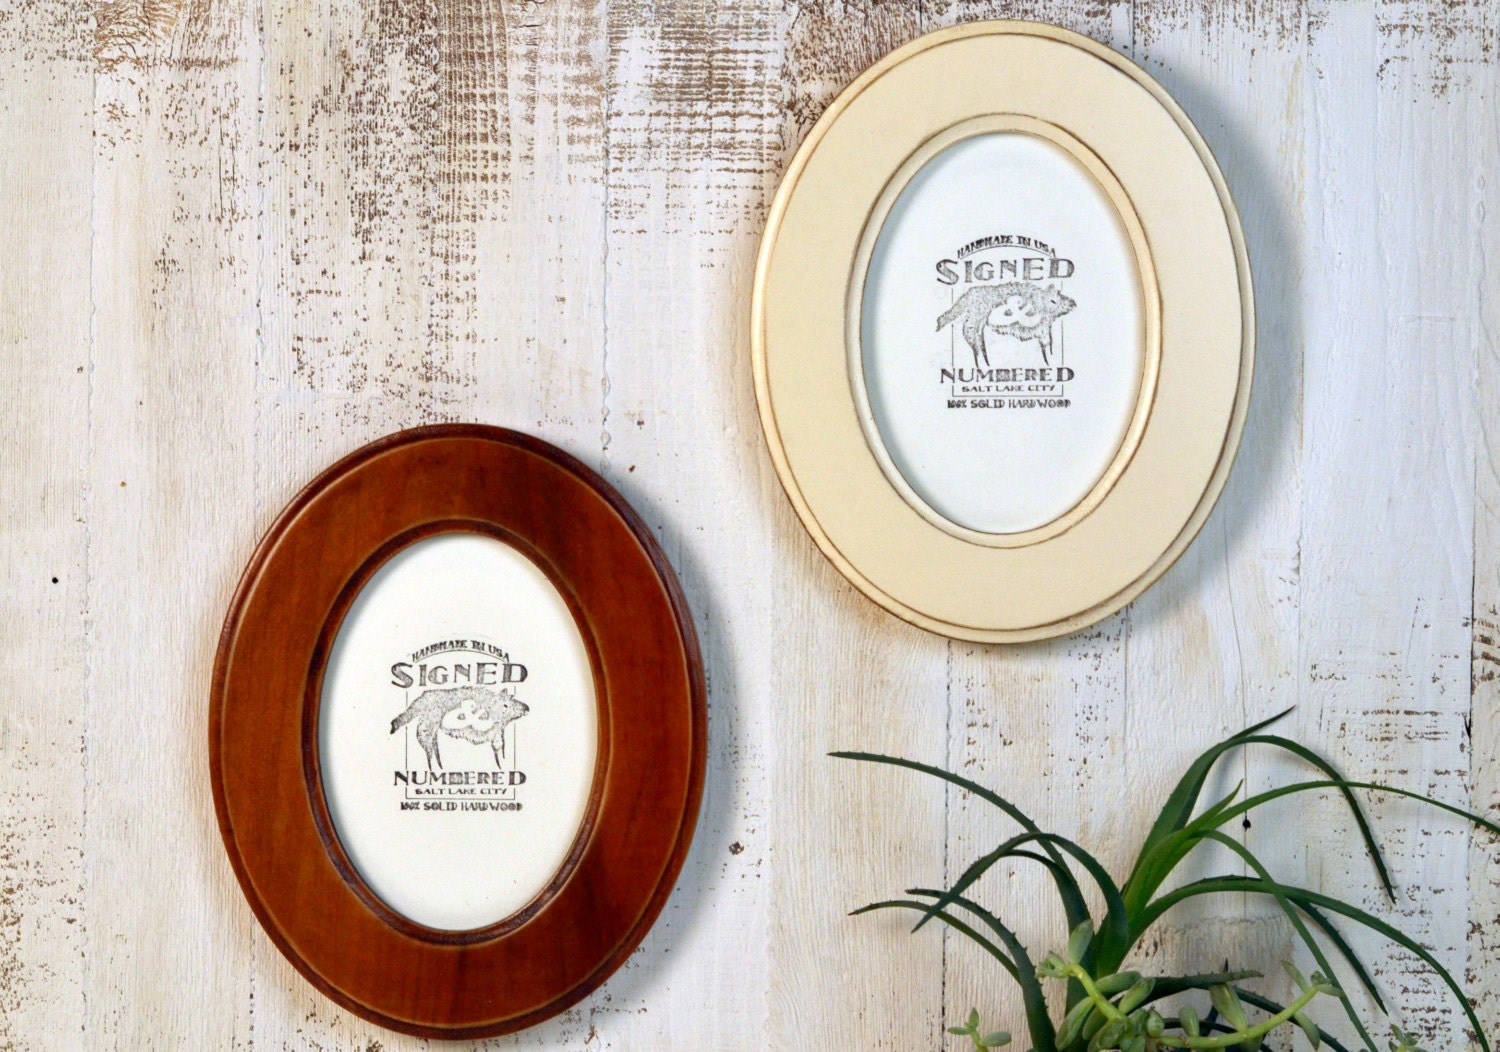 5x7 Oval Opening Picture Frame Oval Shaped Outside In Finish Color